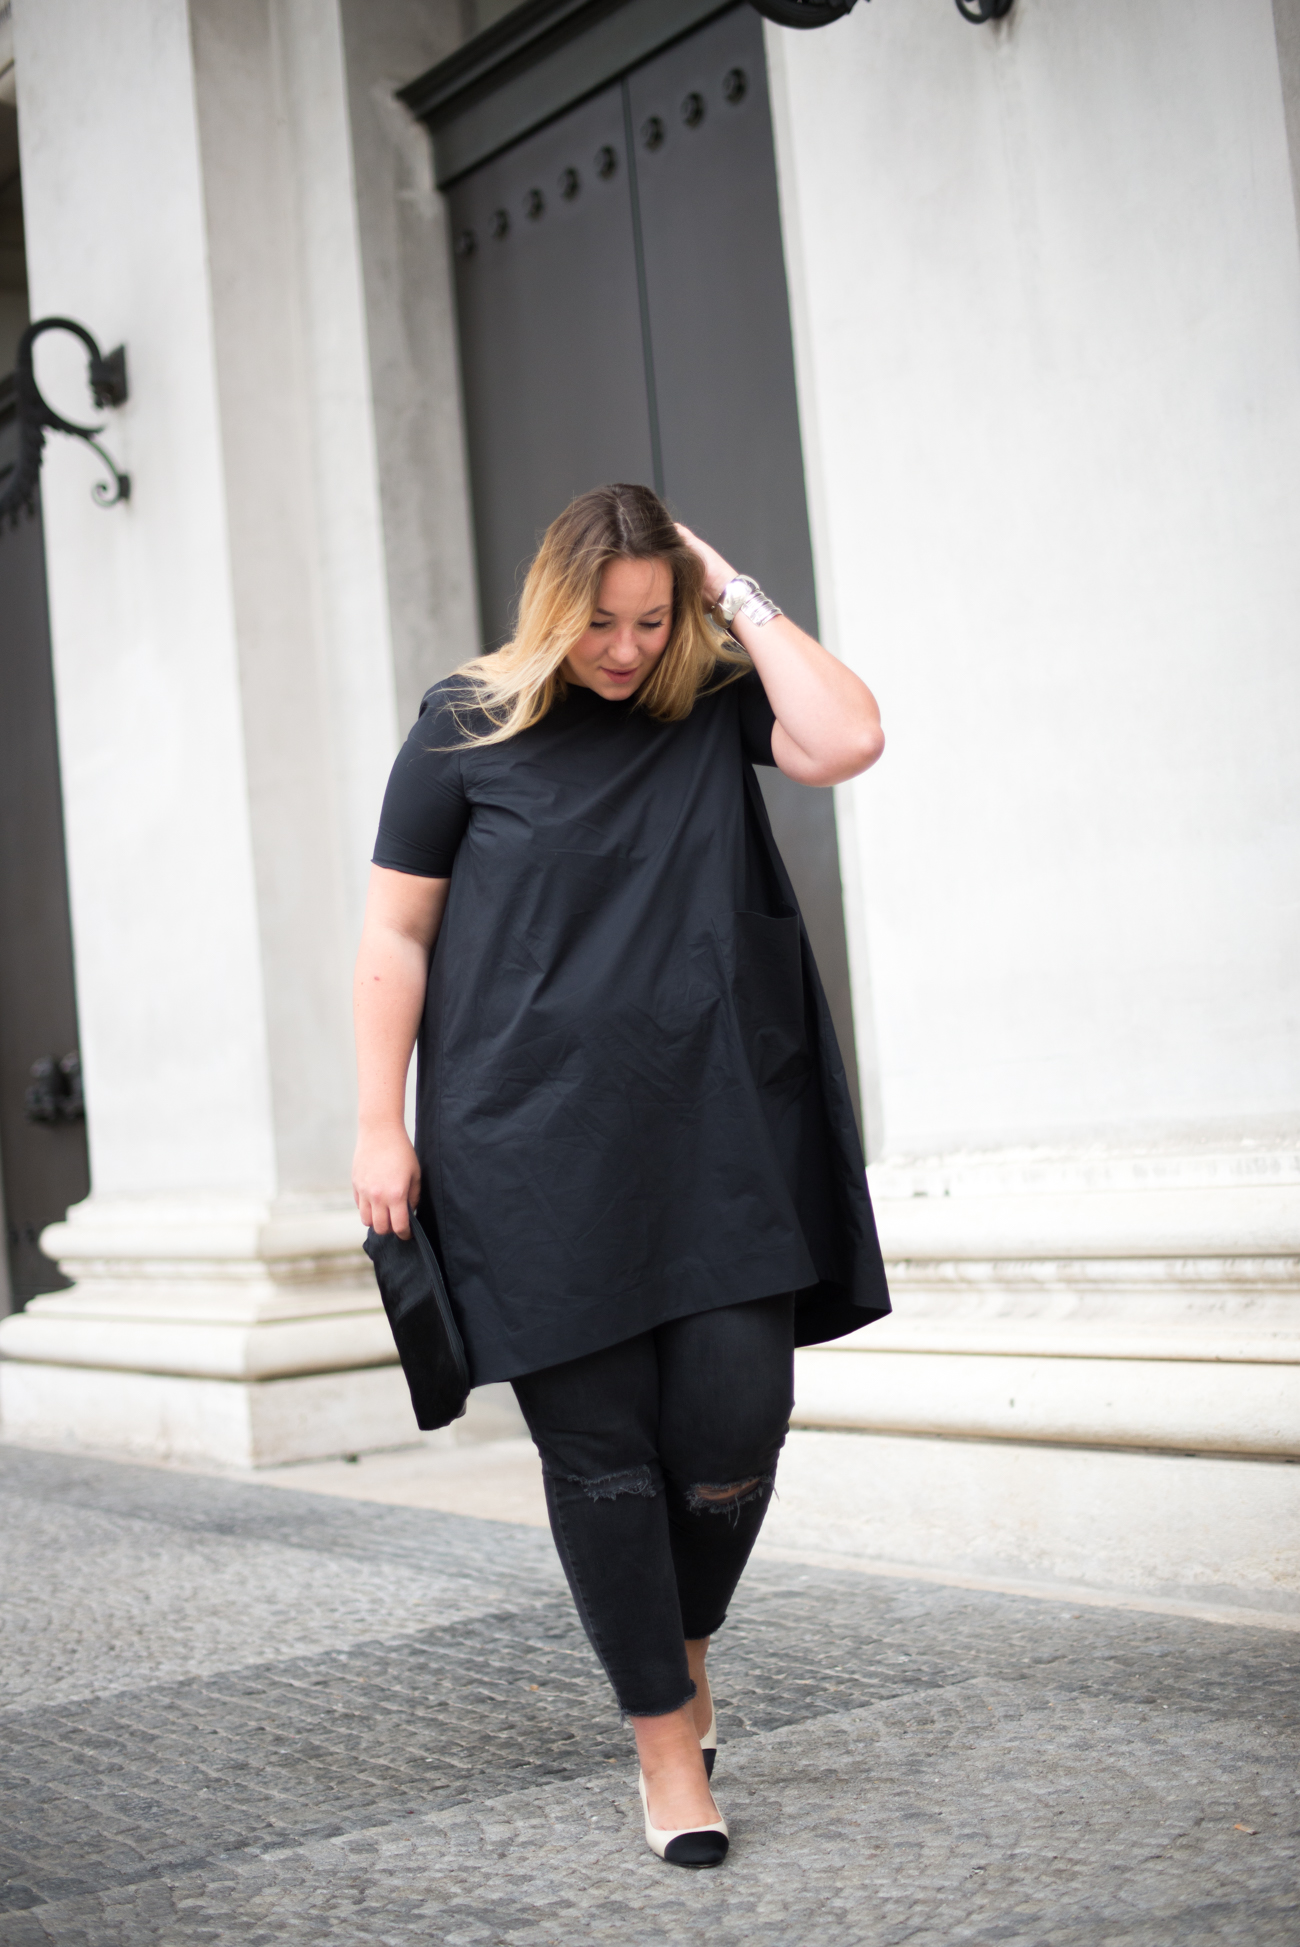 The Skinny and the Curvy One_Dress over Pants_Plussize Blogger_Plussize Fashion_Sling Back Pumps_Chanel Look a like (1 von 5)